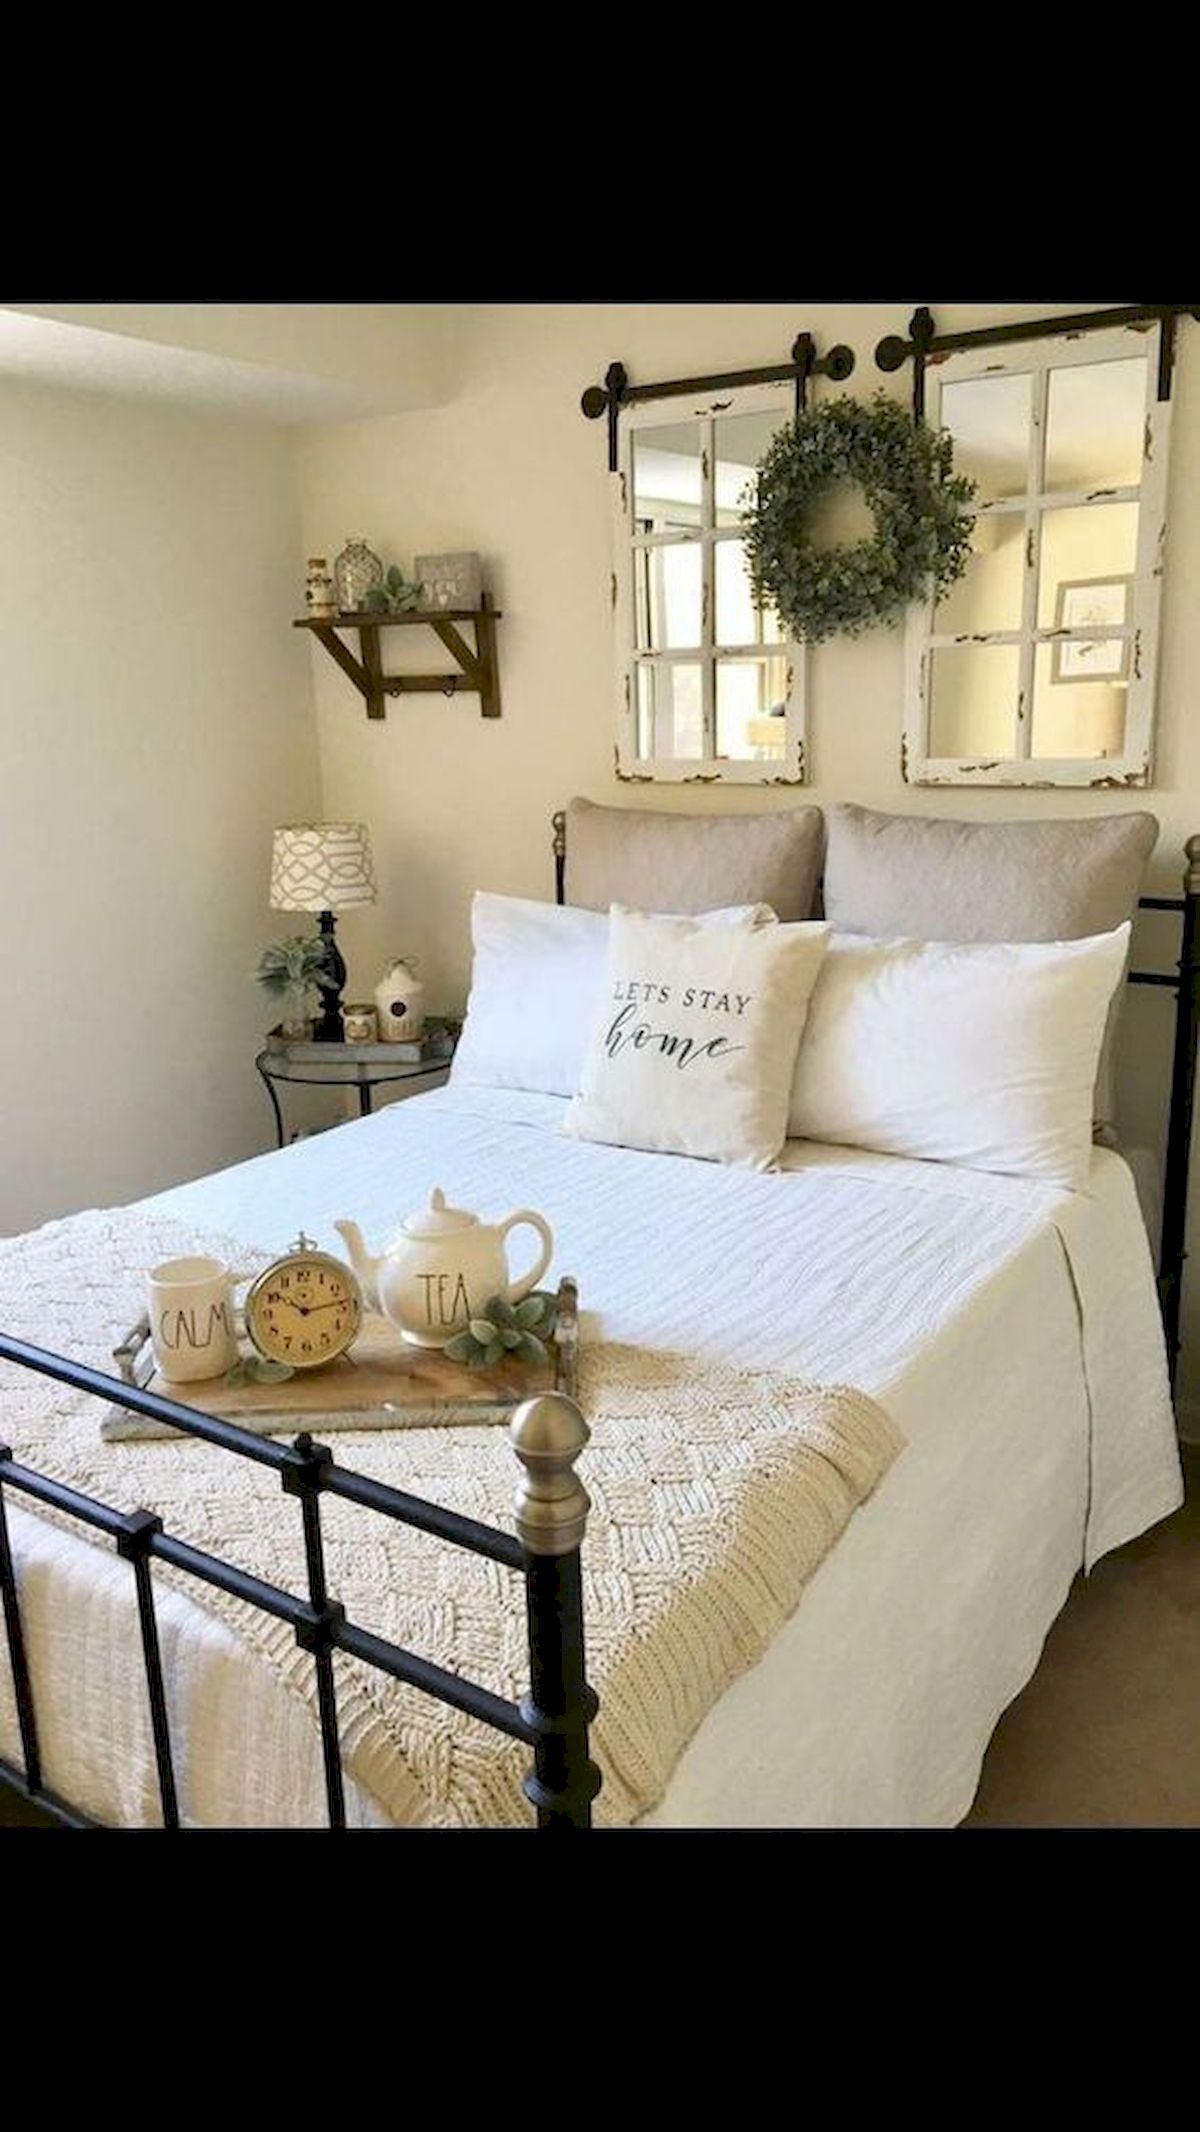 50 Awesome Wall Decor Ideas for Bedroom | Rustic master ...